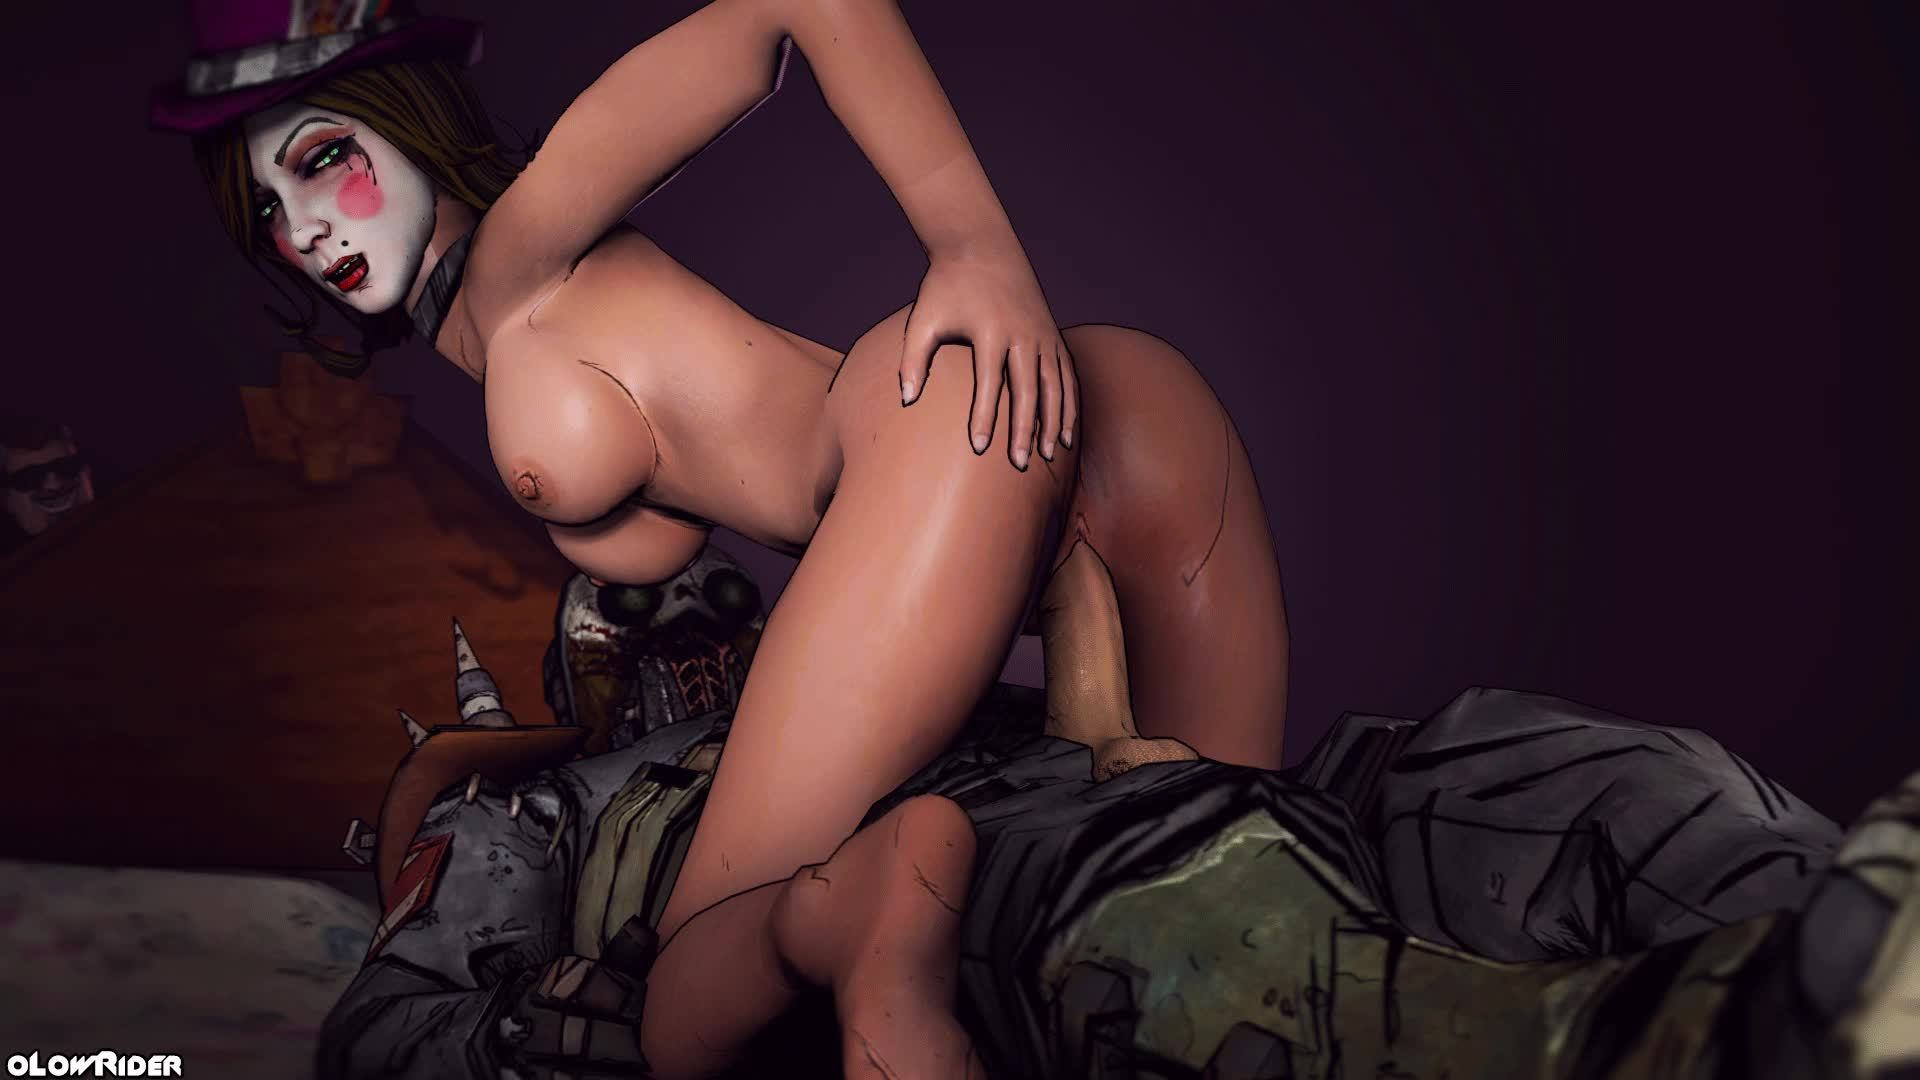 Animated borderlands porn free adult movie